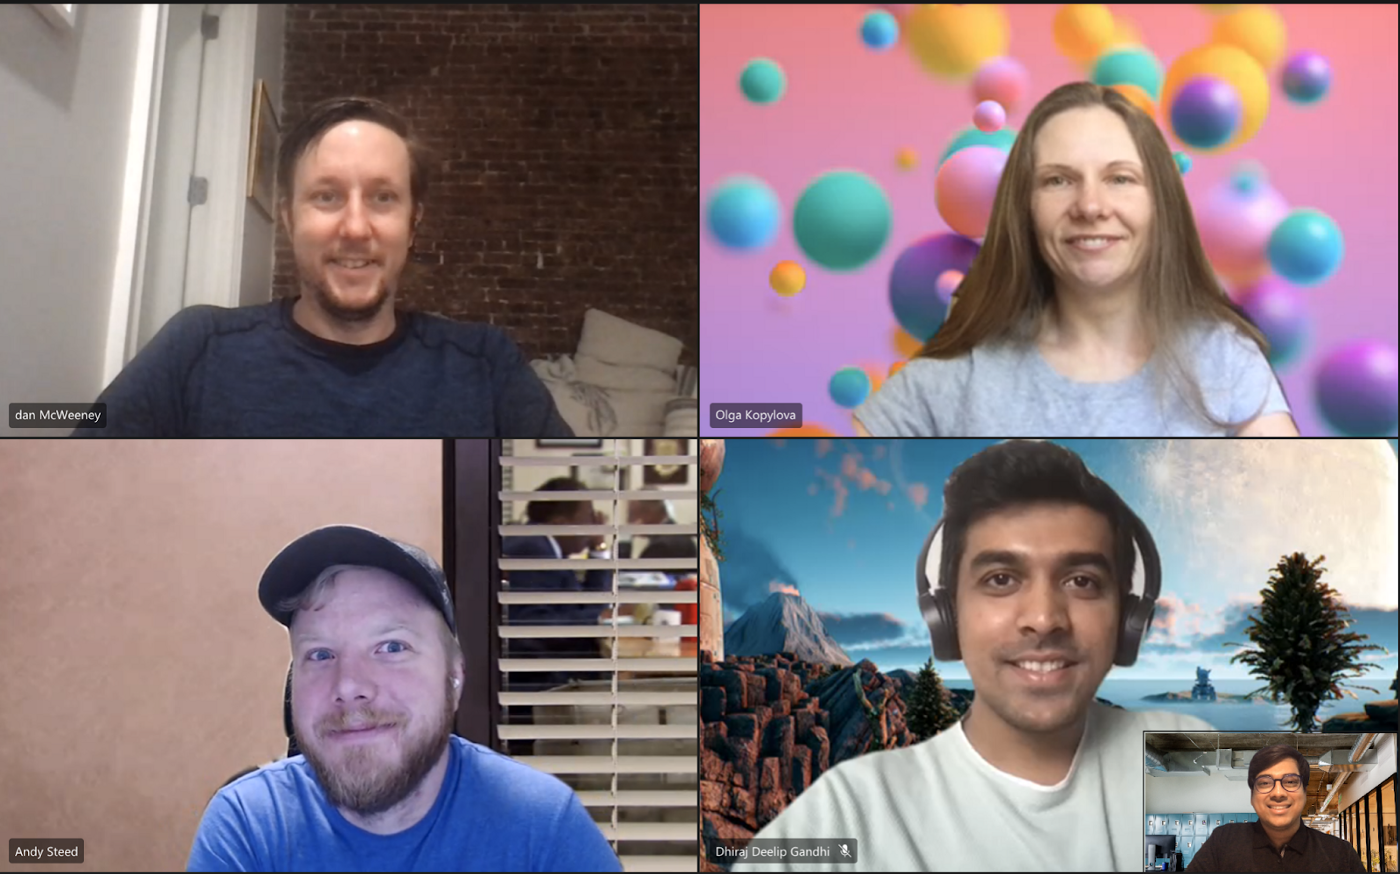 Adobe's open-dev approach in action, as contributors from different teams meet virtually. From top left: Senior Computer Scientist Dan McWeeney, Observability Architect Olga Kopylova, Senior Computer Scientist Andy Steed, Software Development Intern Dhiraj Gandhi, and Product Manager Manik Jindal.